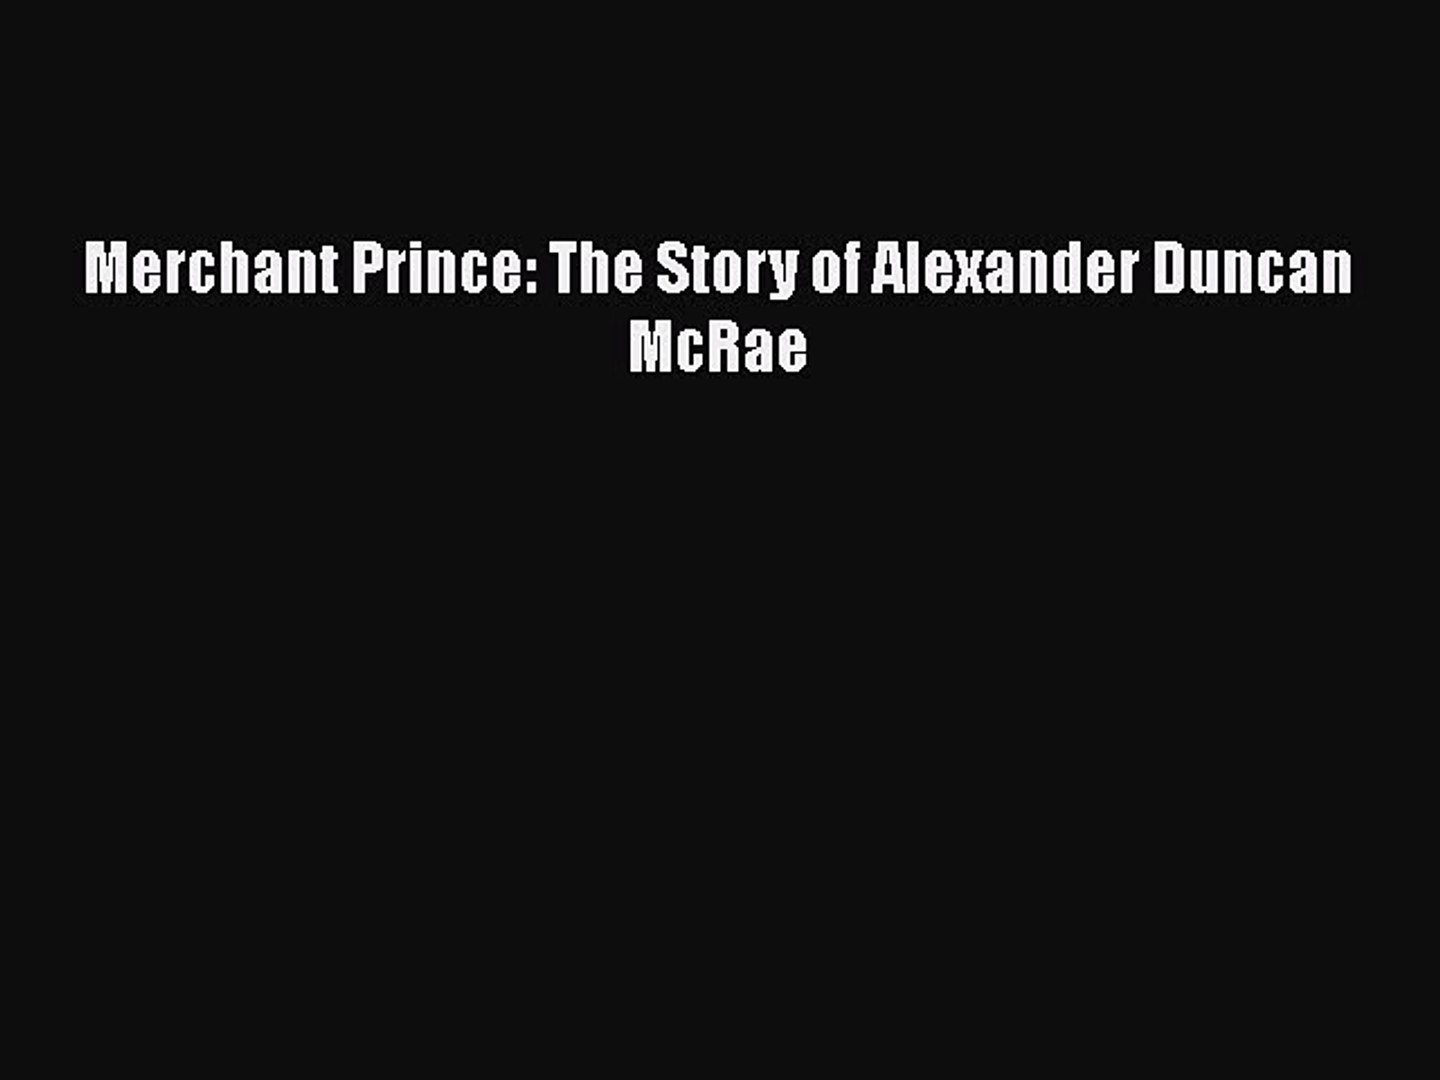 Download Merchant Prince: The Story of Alexander Duncan McRae PDF Free